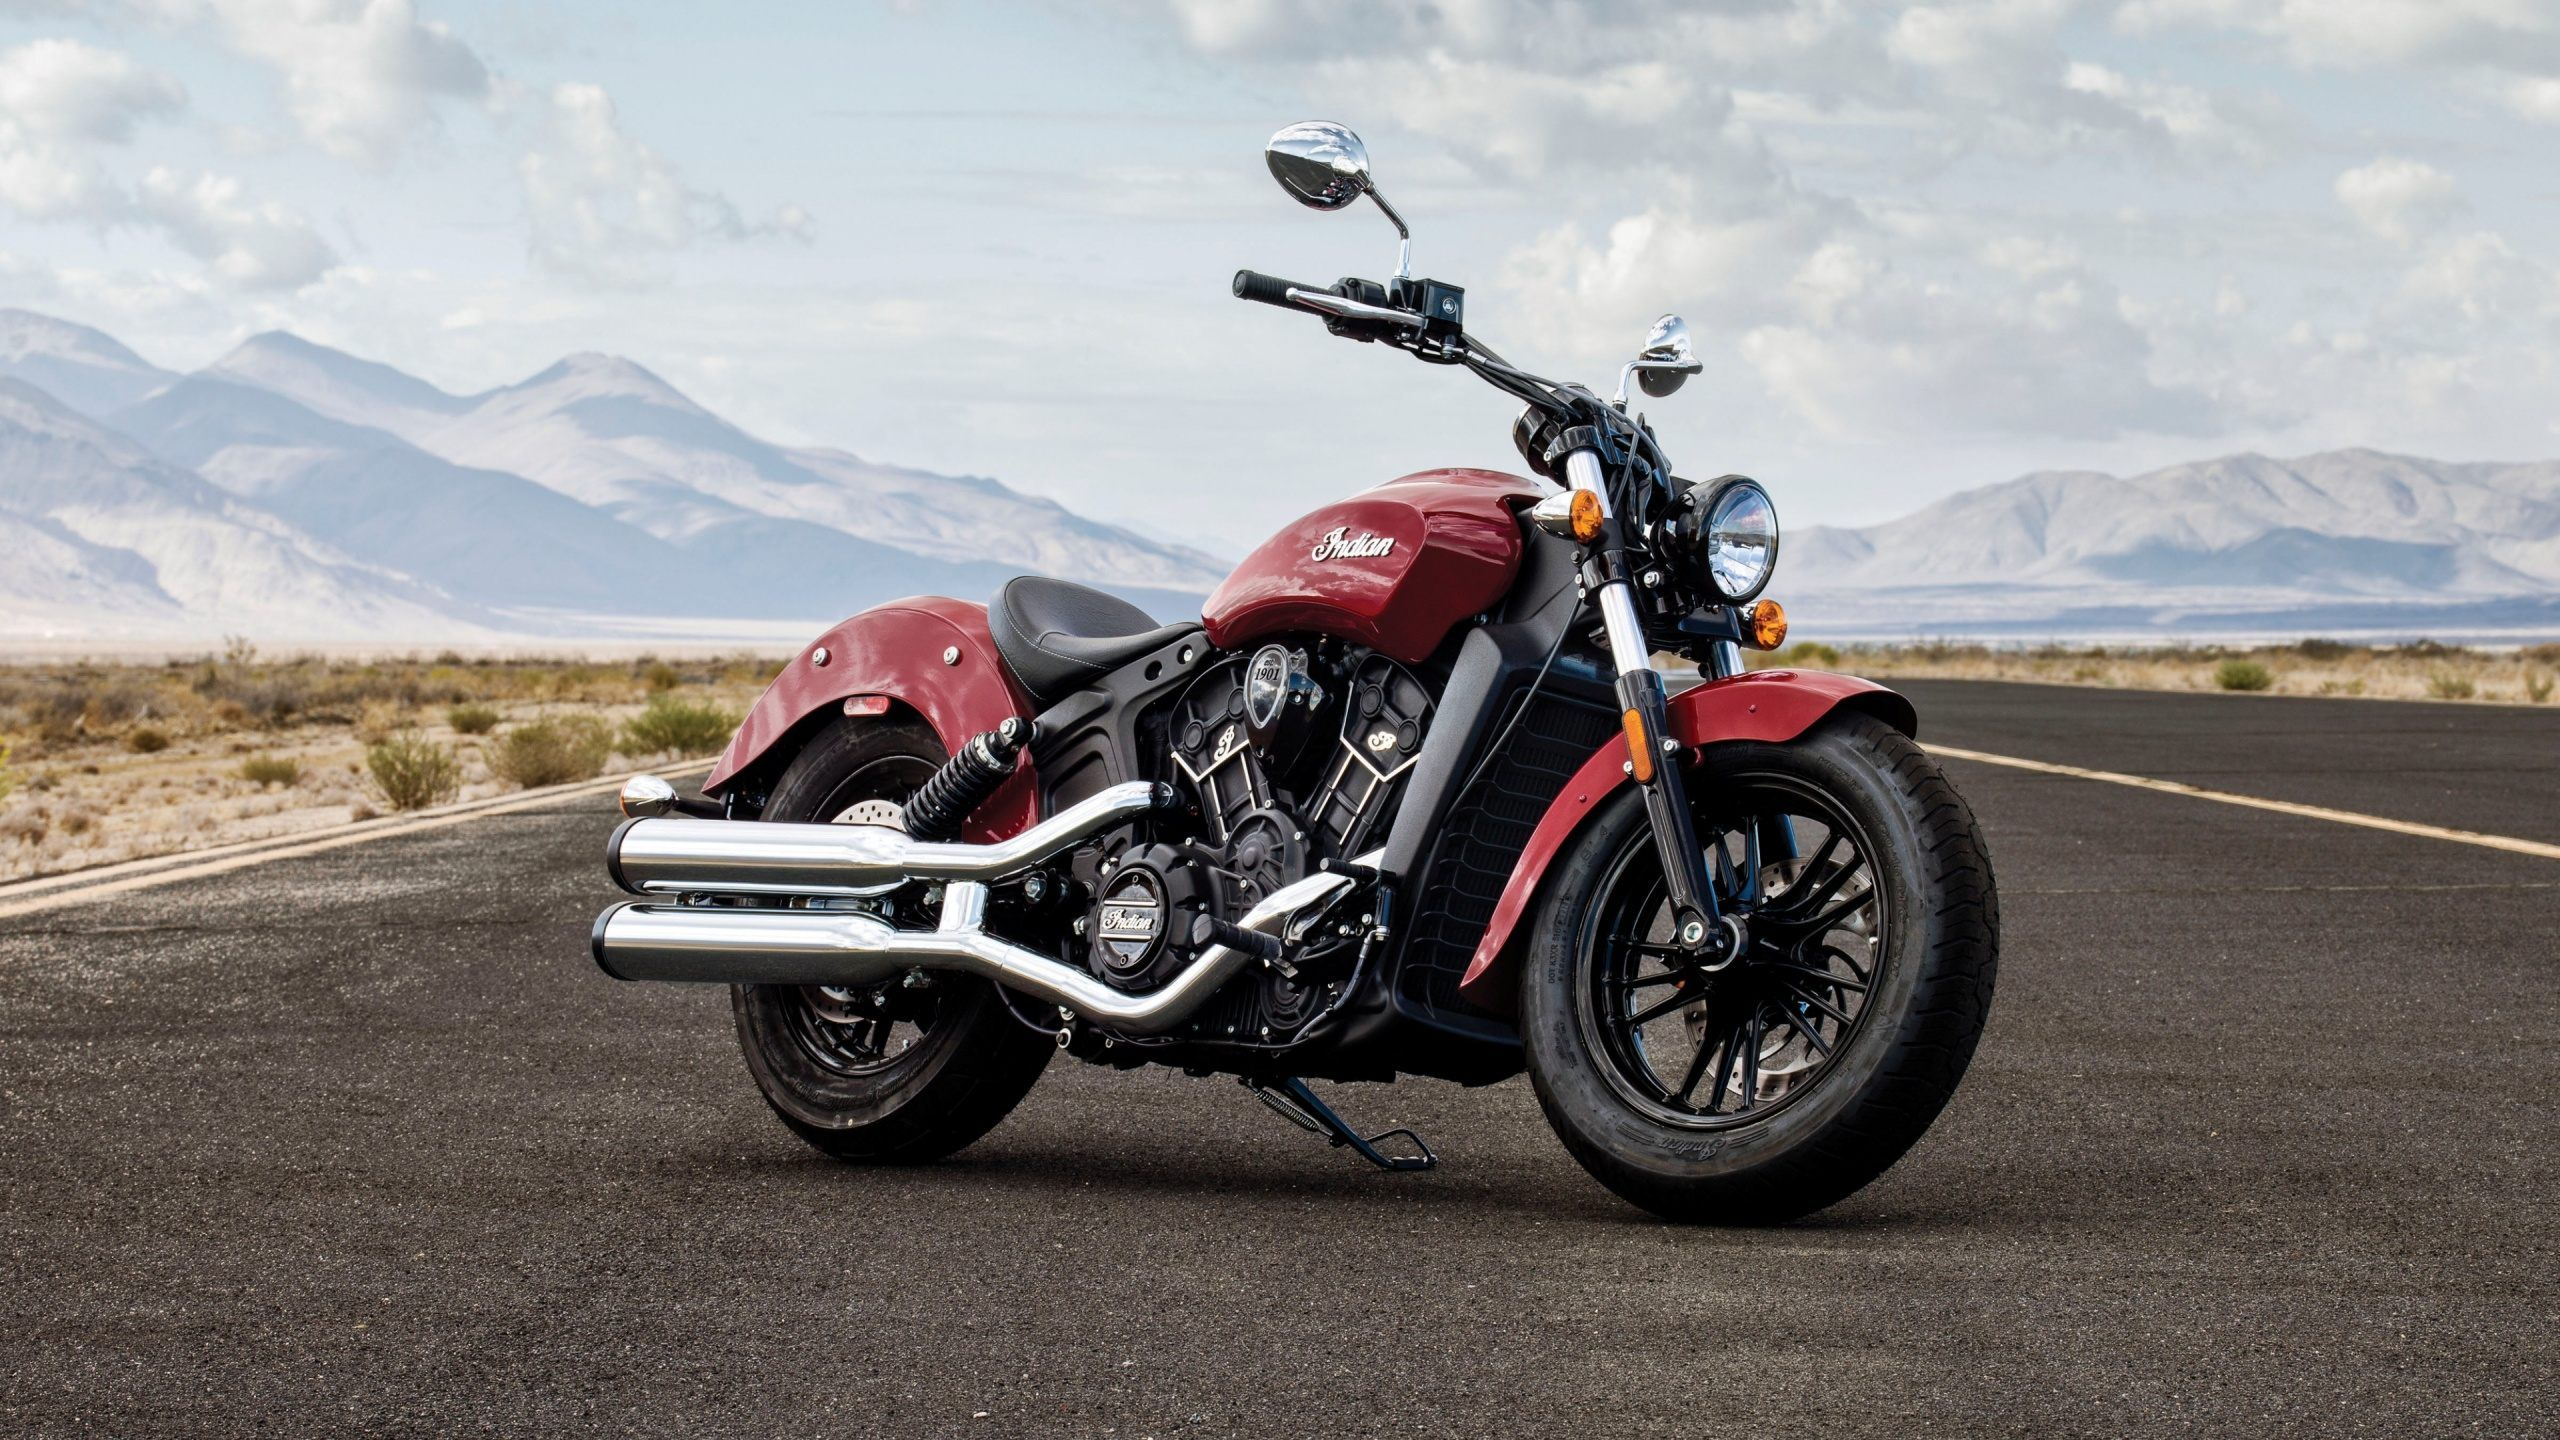 indian scout sixty bike wallpaper | biker brotherhood | pinterest